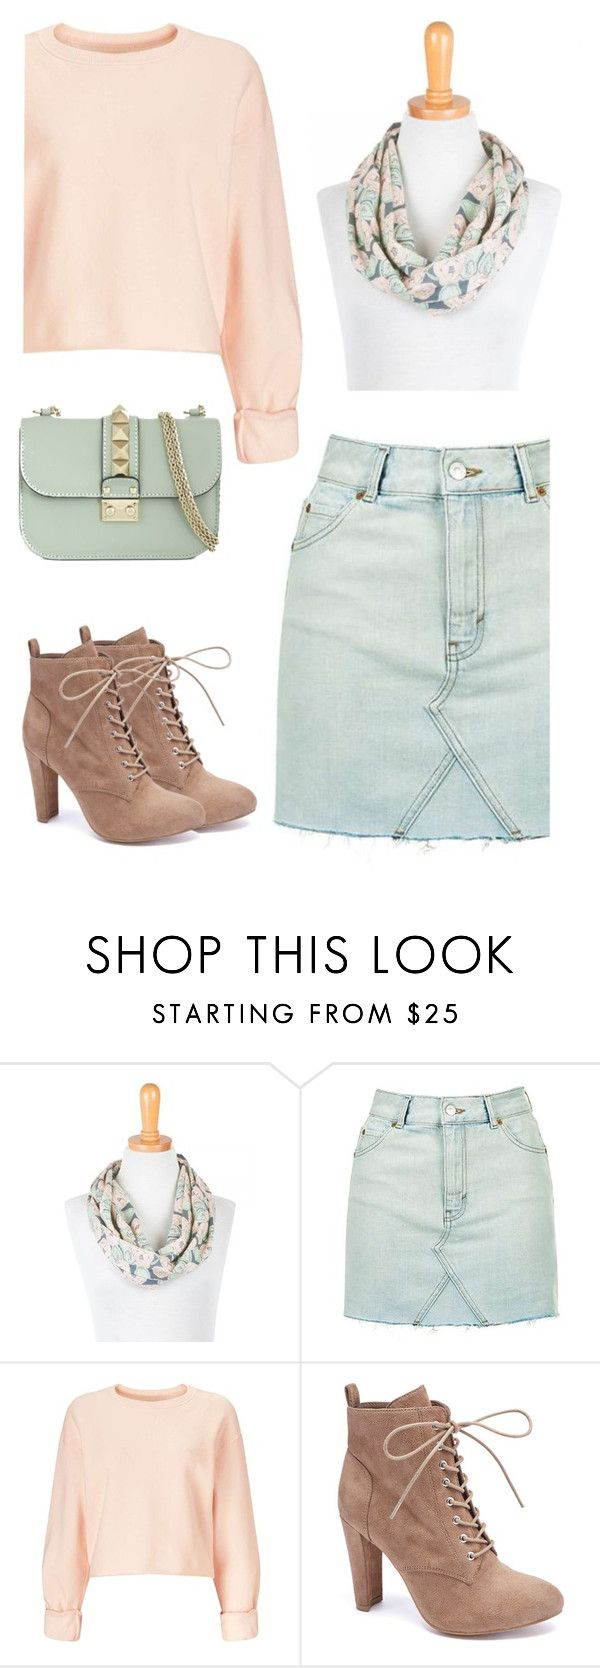 """""""Untitled #1860"""" by ruru833 ❤ liked on Polyvore featuring Topshop, Miss Selfridge, Wild Diva and Valentino"""